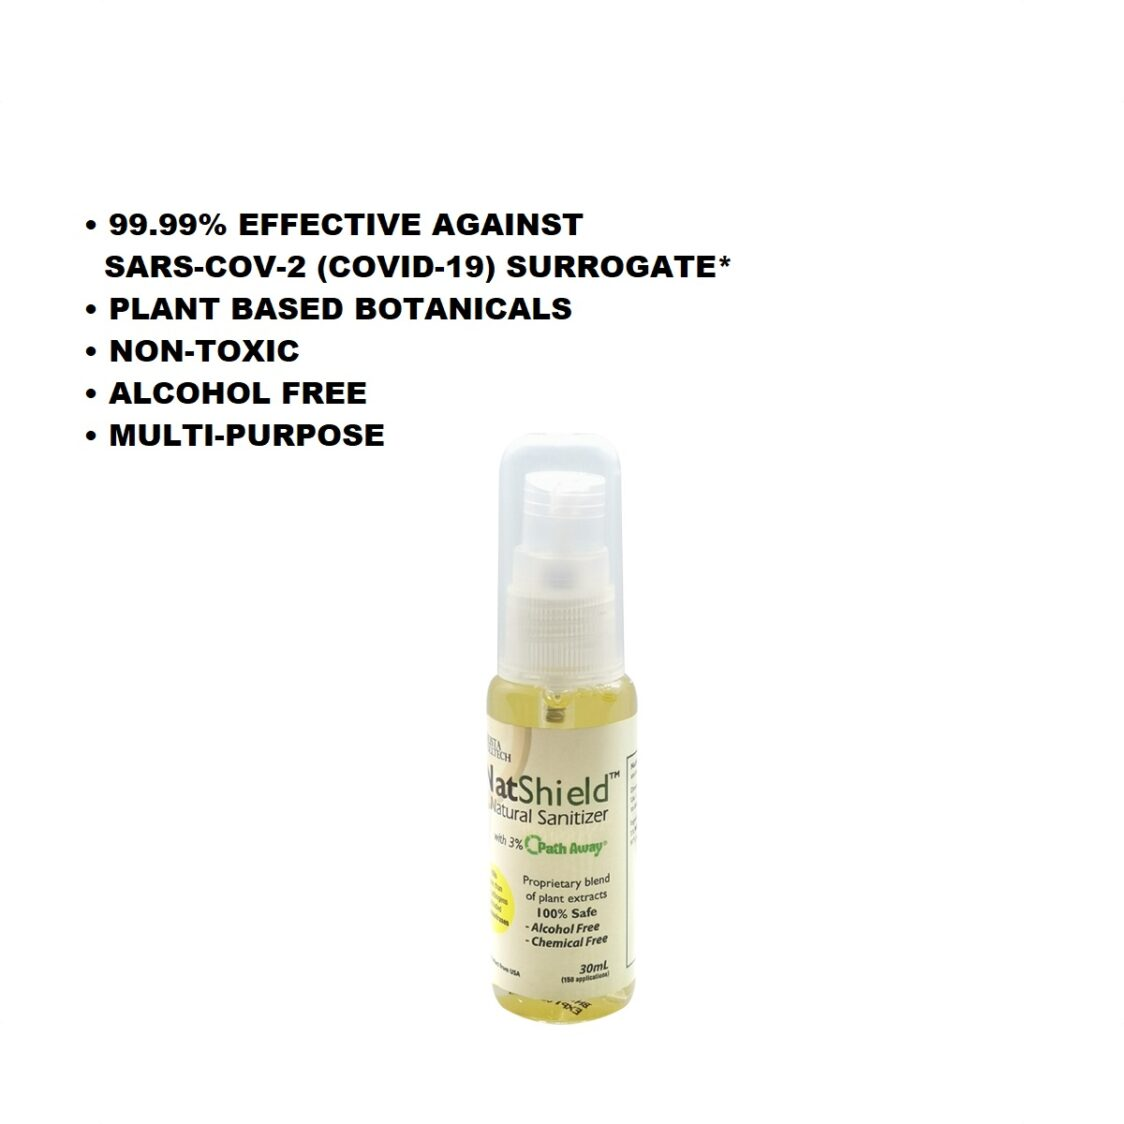 NatShield Natural Sanitizer with Path-Away 30ml